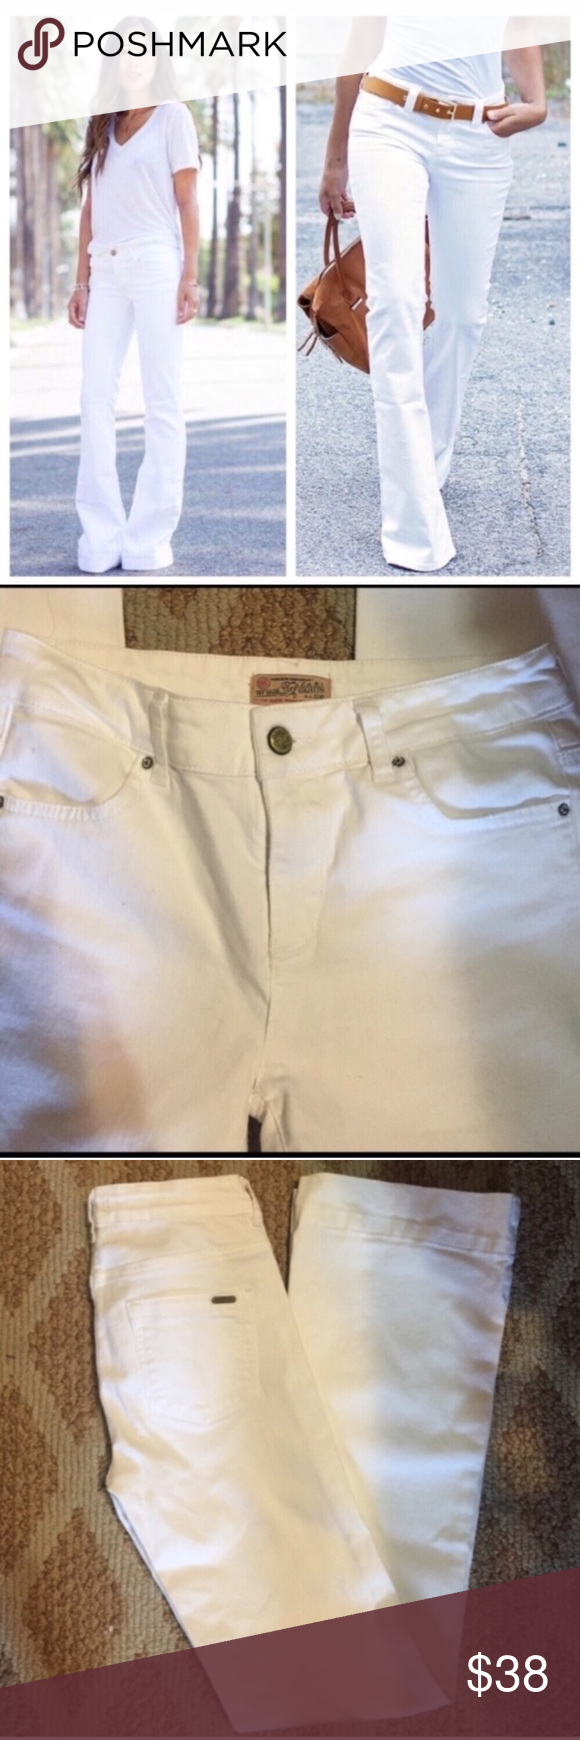 Zara White Jeans! EUC- worn once! Slight Flare/Bootcut. Super Chic! Inseam 31.5'. Waist is waist is 13' across laying flat. Rise is 9'. 98% cotton 2% Elastane. 🌟profile pic is styling idea only🌟 Zara Jeans